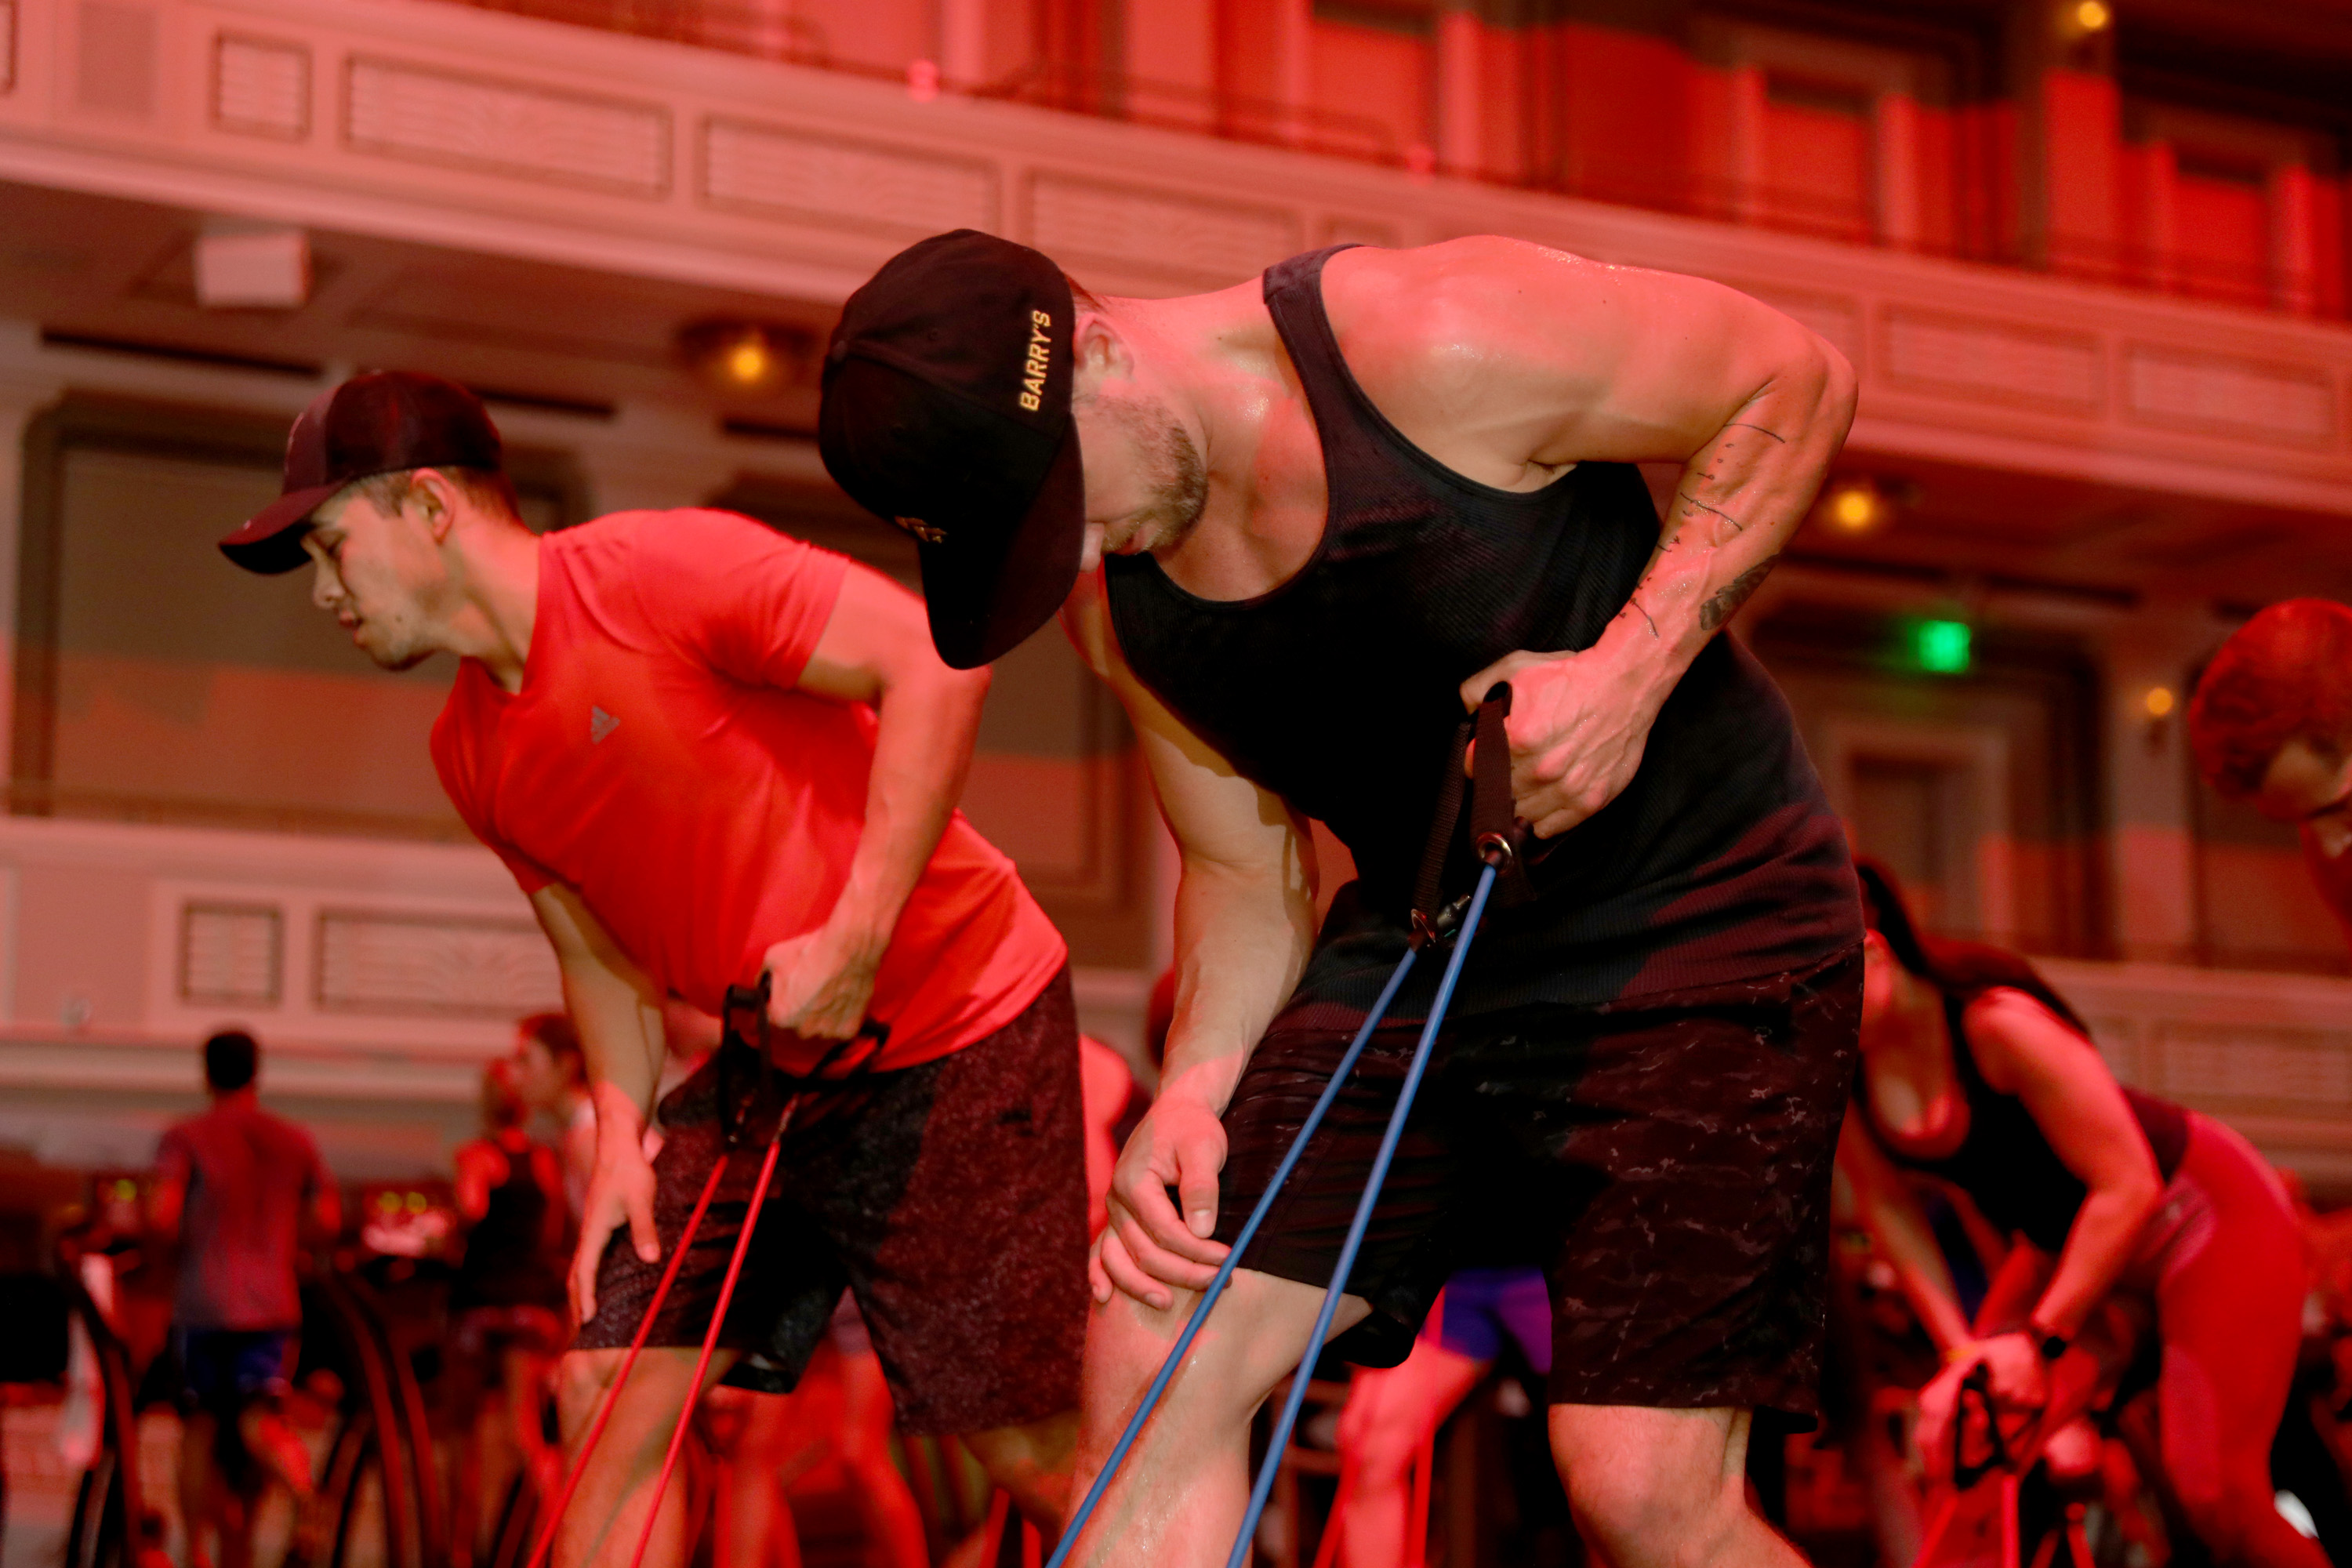 Men in a Barry's Bootcamp exercise class pull on elastic cords, June 2018, Nashville, Tennessee.